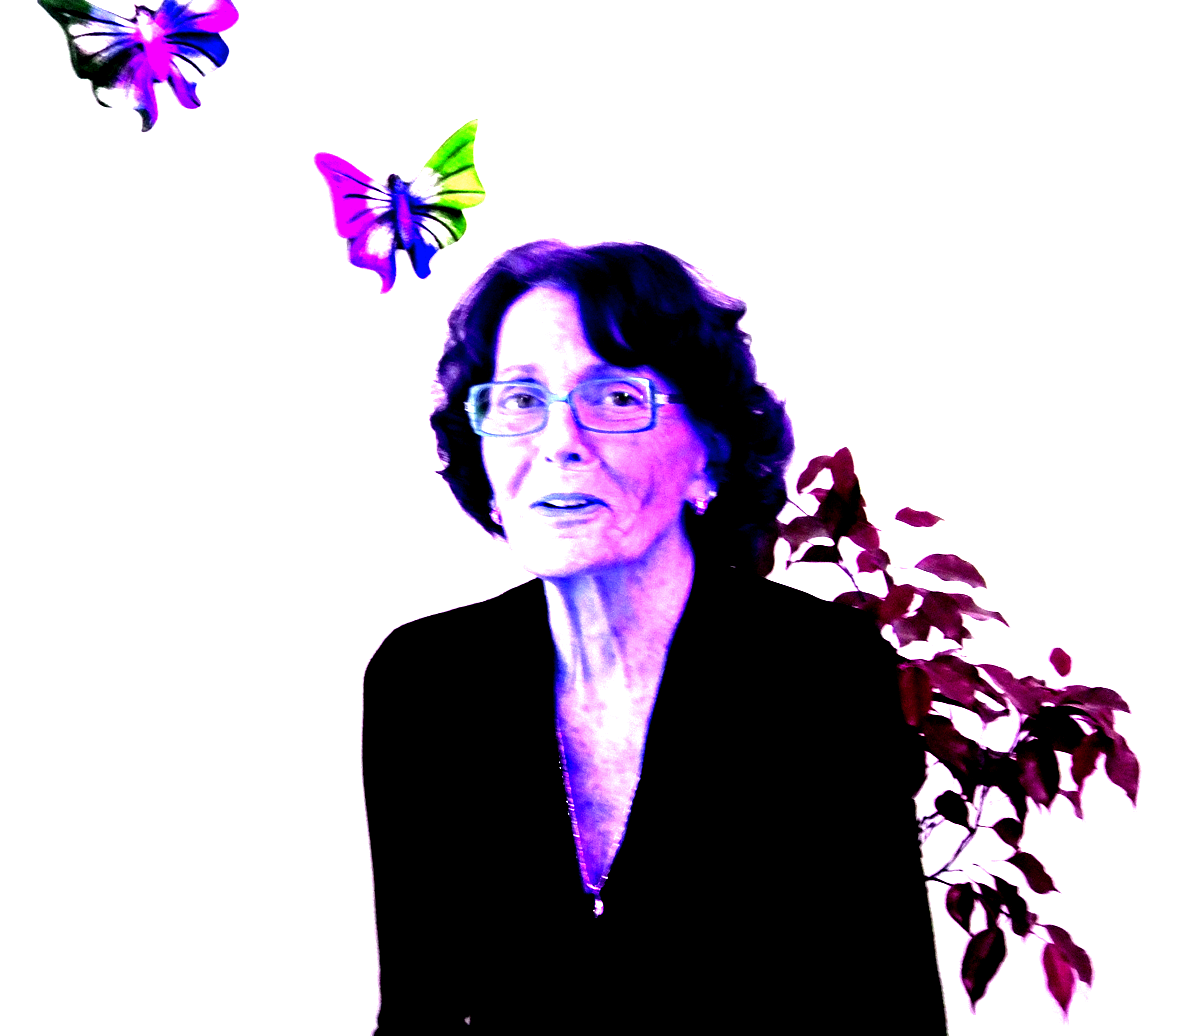 Ellen M. Gabrielle 1943 - 2019A lifetime of Love and Service - So many in the greater New Haven community knew Ellen as a fierce long-time advocate and leader on the HIV/AIDS, housing and homelessness, and food insecurity front lines - she will be dearly missed. Ellen served as Development Director here at Liberty Community Services for many years, was one of the visionaries who founded the Sunrise Cafe, started Liberty's Project Style event and continued over the years to lead the charge each year in cultivating amazing donations for the event's auction.Ellen felt the best way to honor her commitment to making a difference was through a donation to St. Mary's Church, New Haven, A Place to Nourish your Health (APNH), or the Liberty's Sunrise Cafe. Please also consider following her example by volunteering your time to these worthwhile organizations. Check our website or call 203-495-7600 for more information. Please note that your gift is for the Sunrise Cafe and in honor of Ellen.New Haven Register Obituary